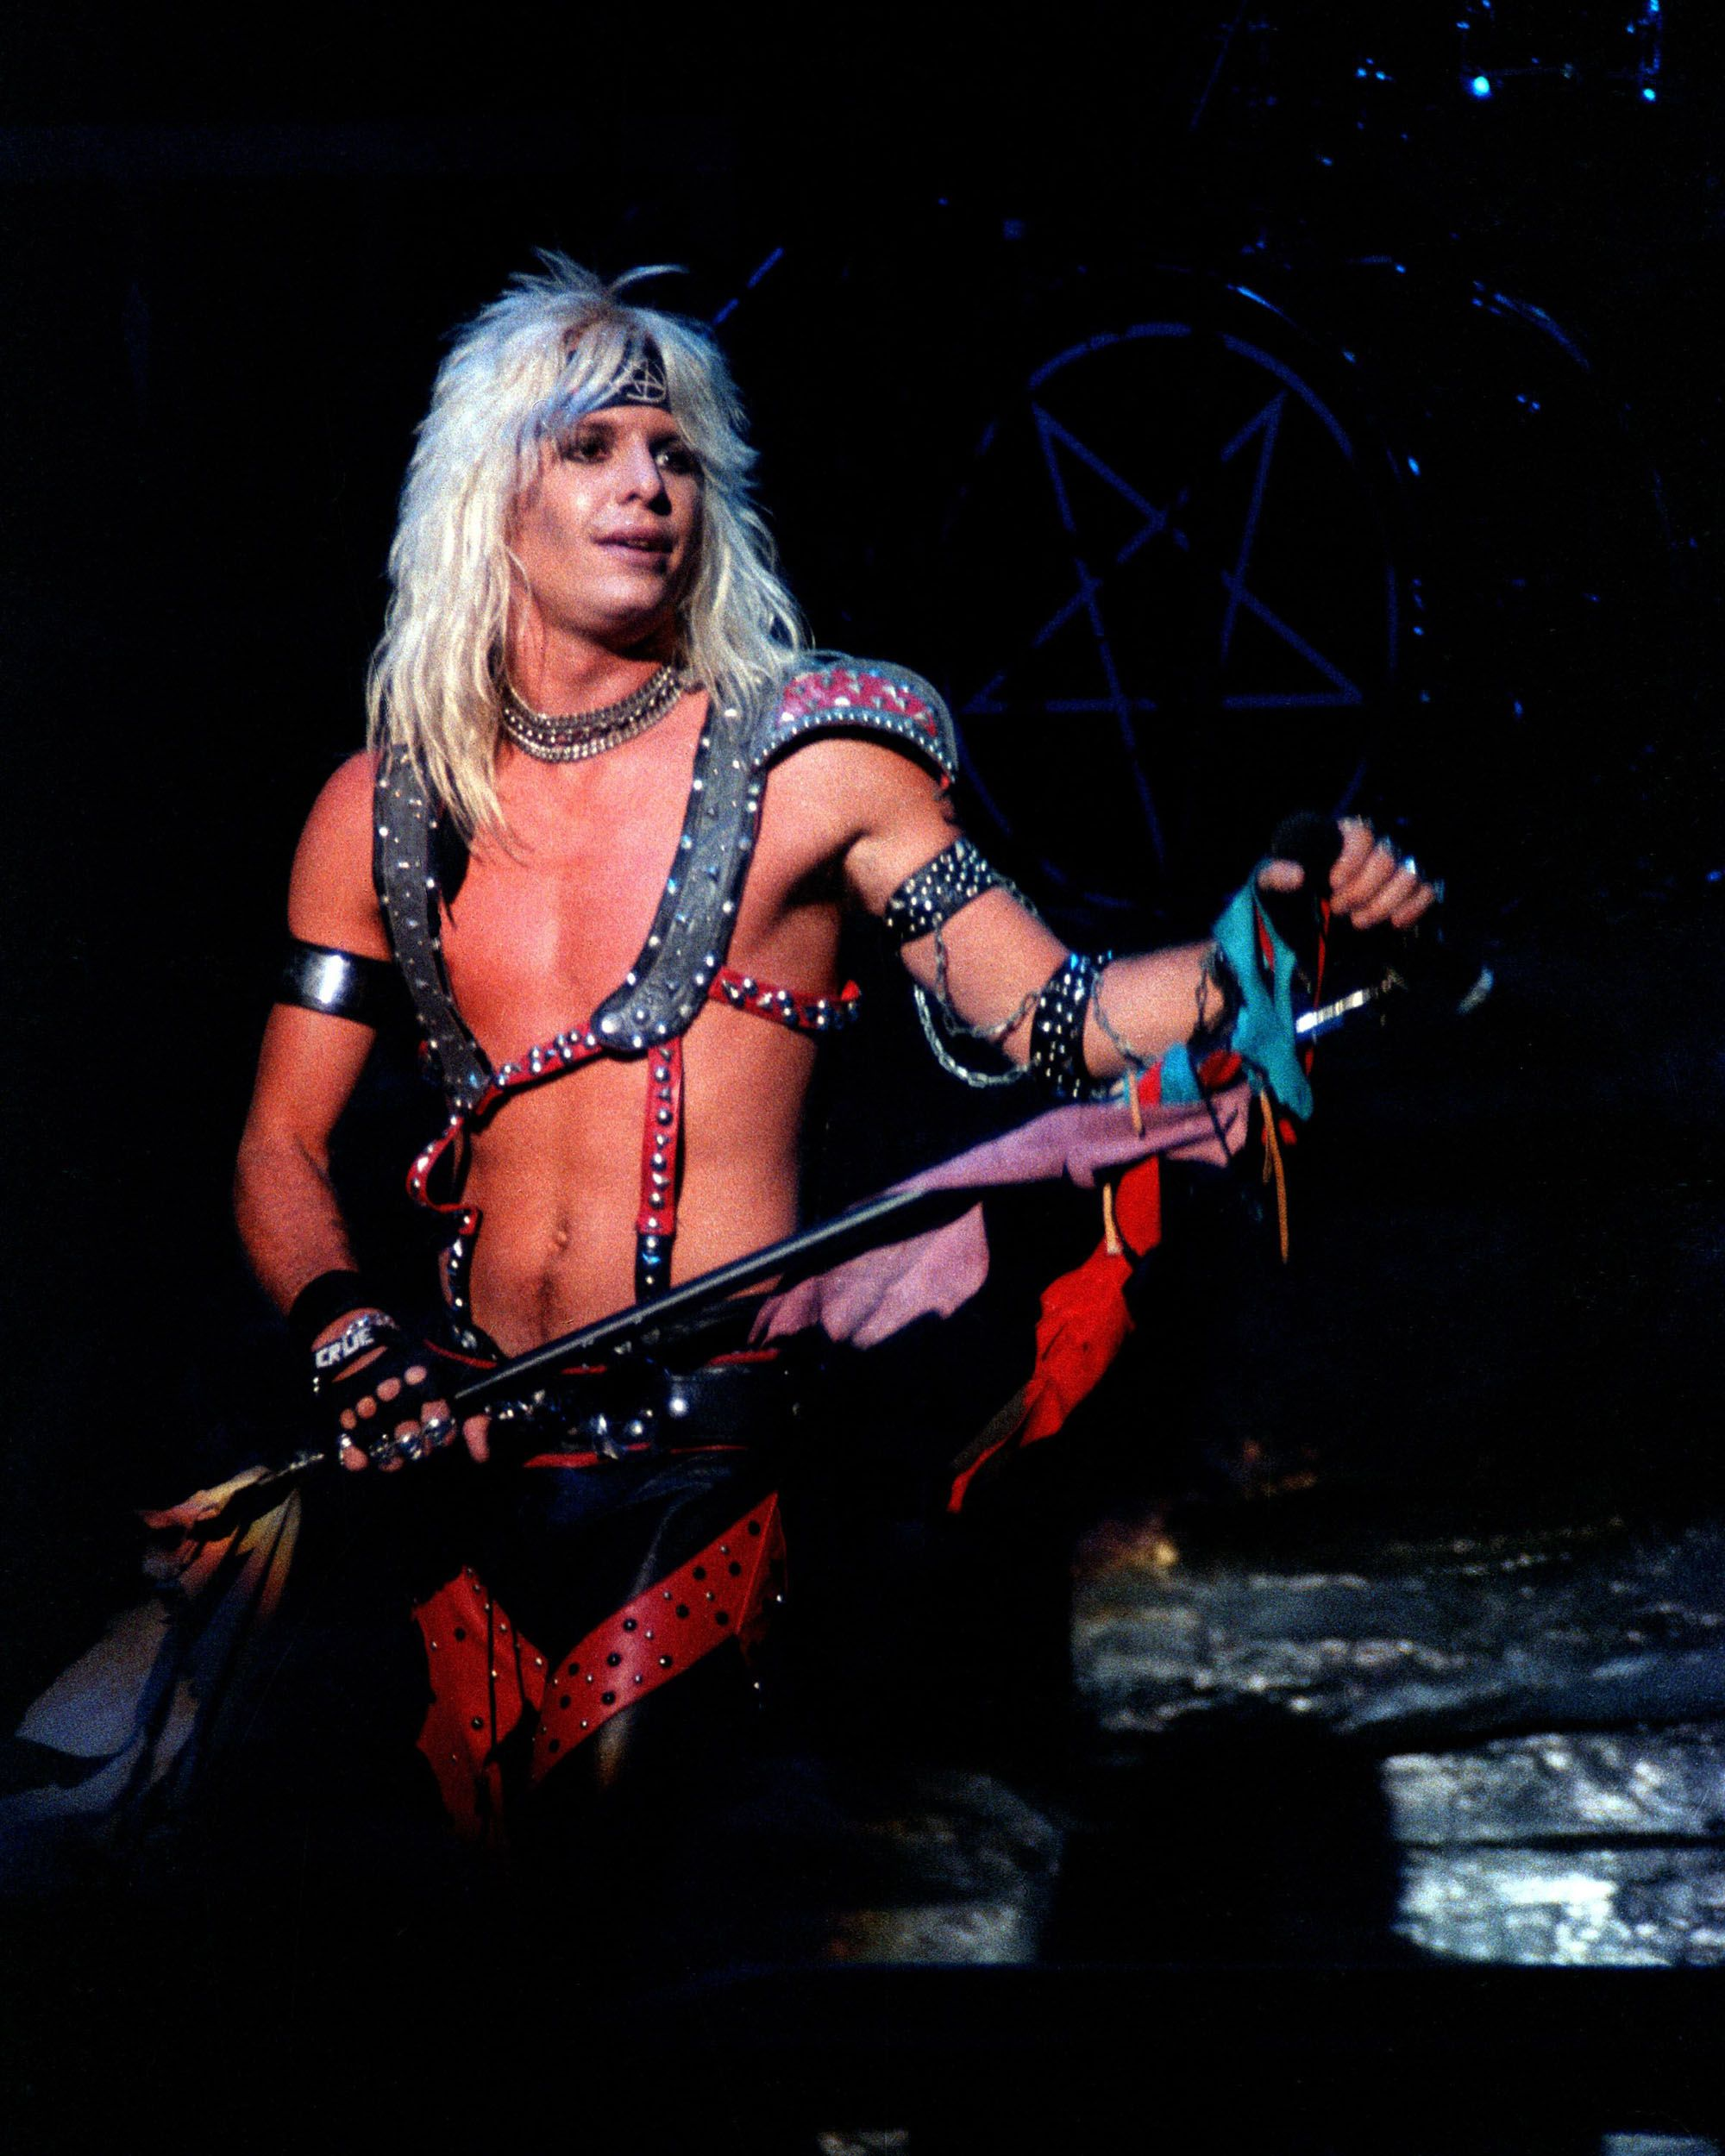 Vince Neil performing with Mötley Crüe at Warfield Theater in San Francisco, California on April 24, 1981.